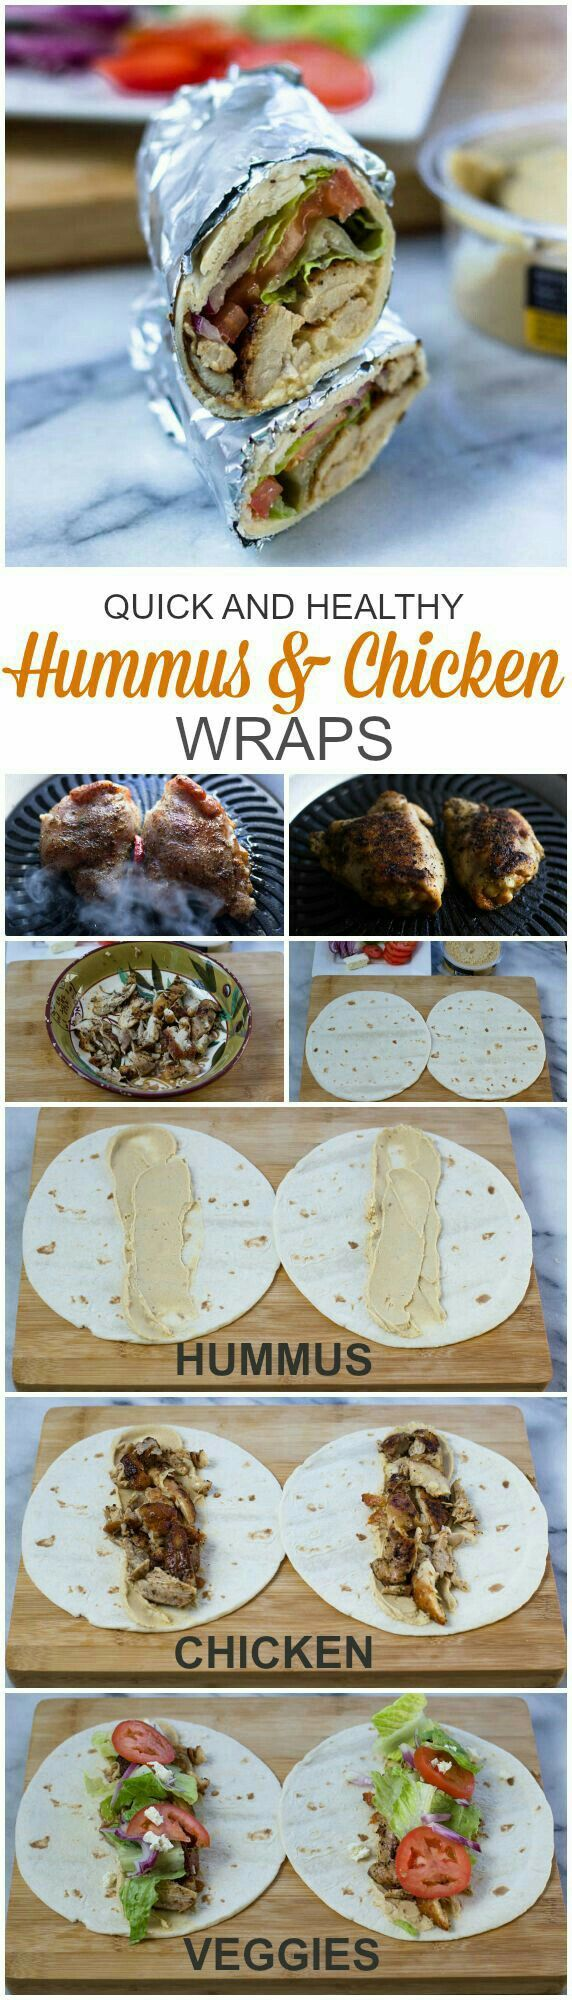 Hummus + Chicken Wraps.